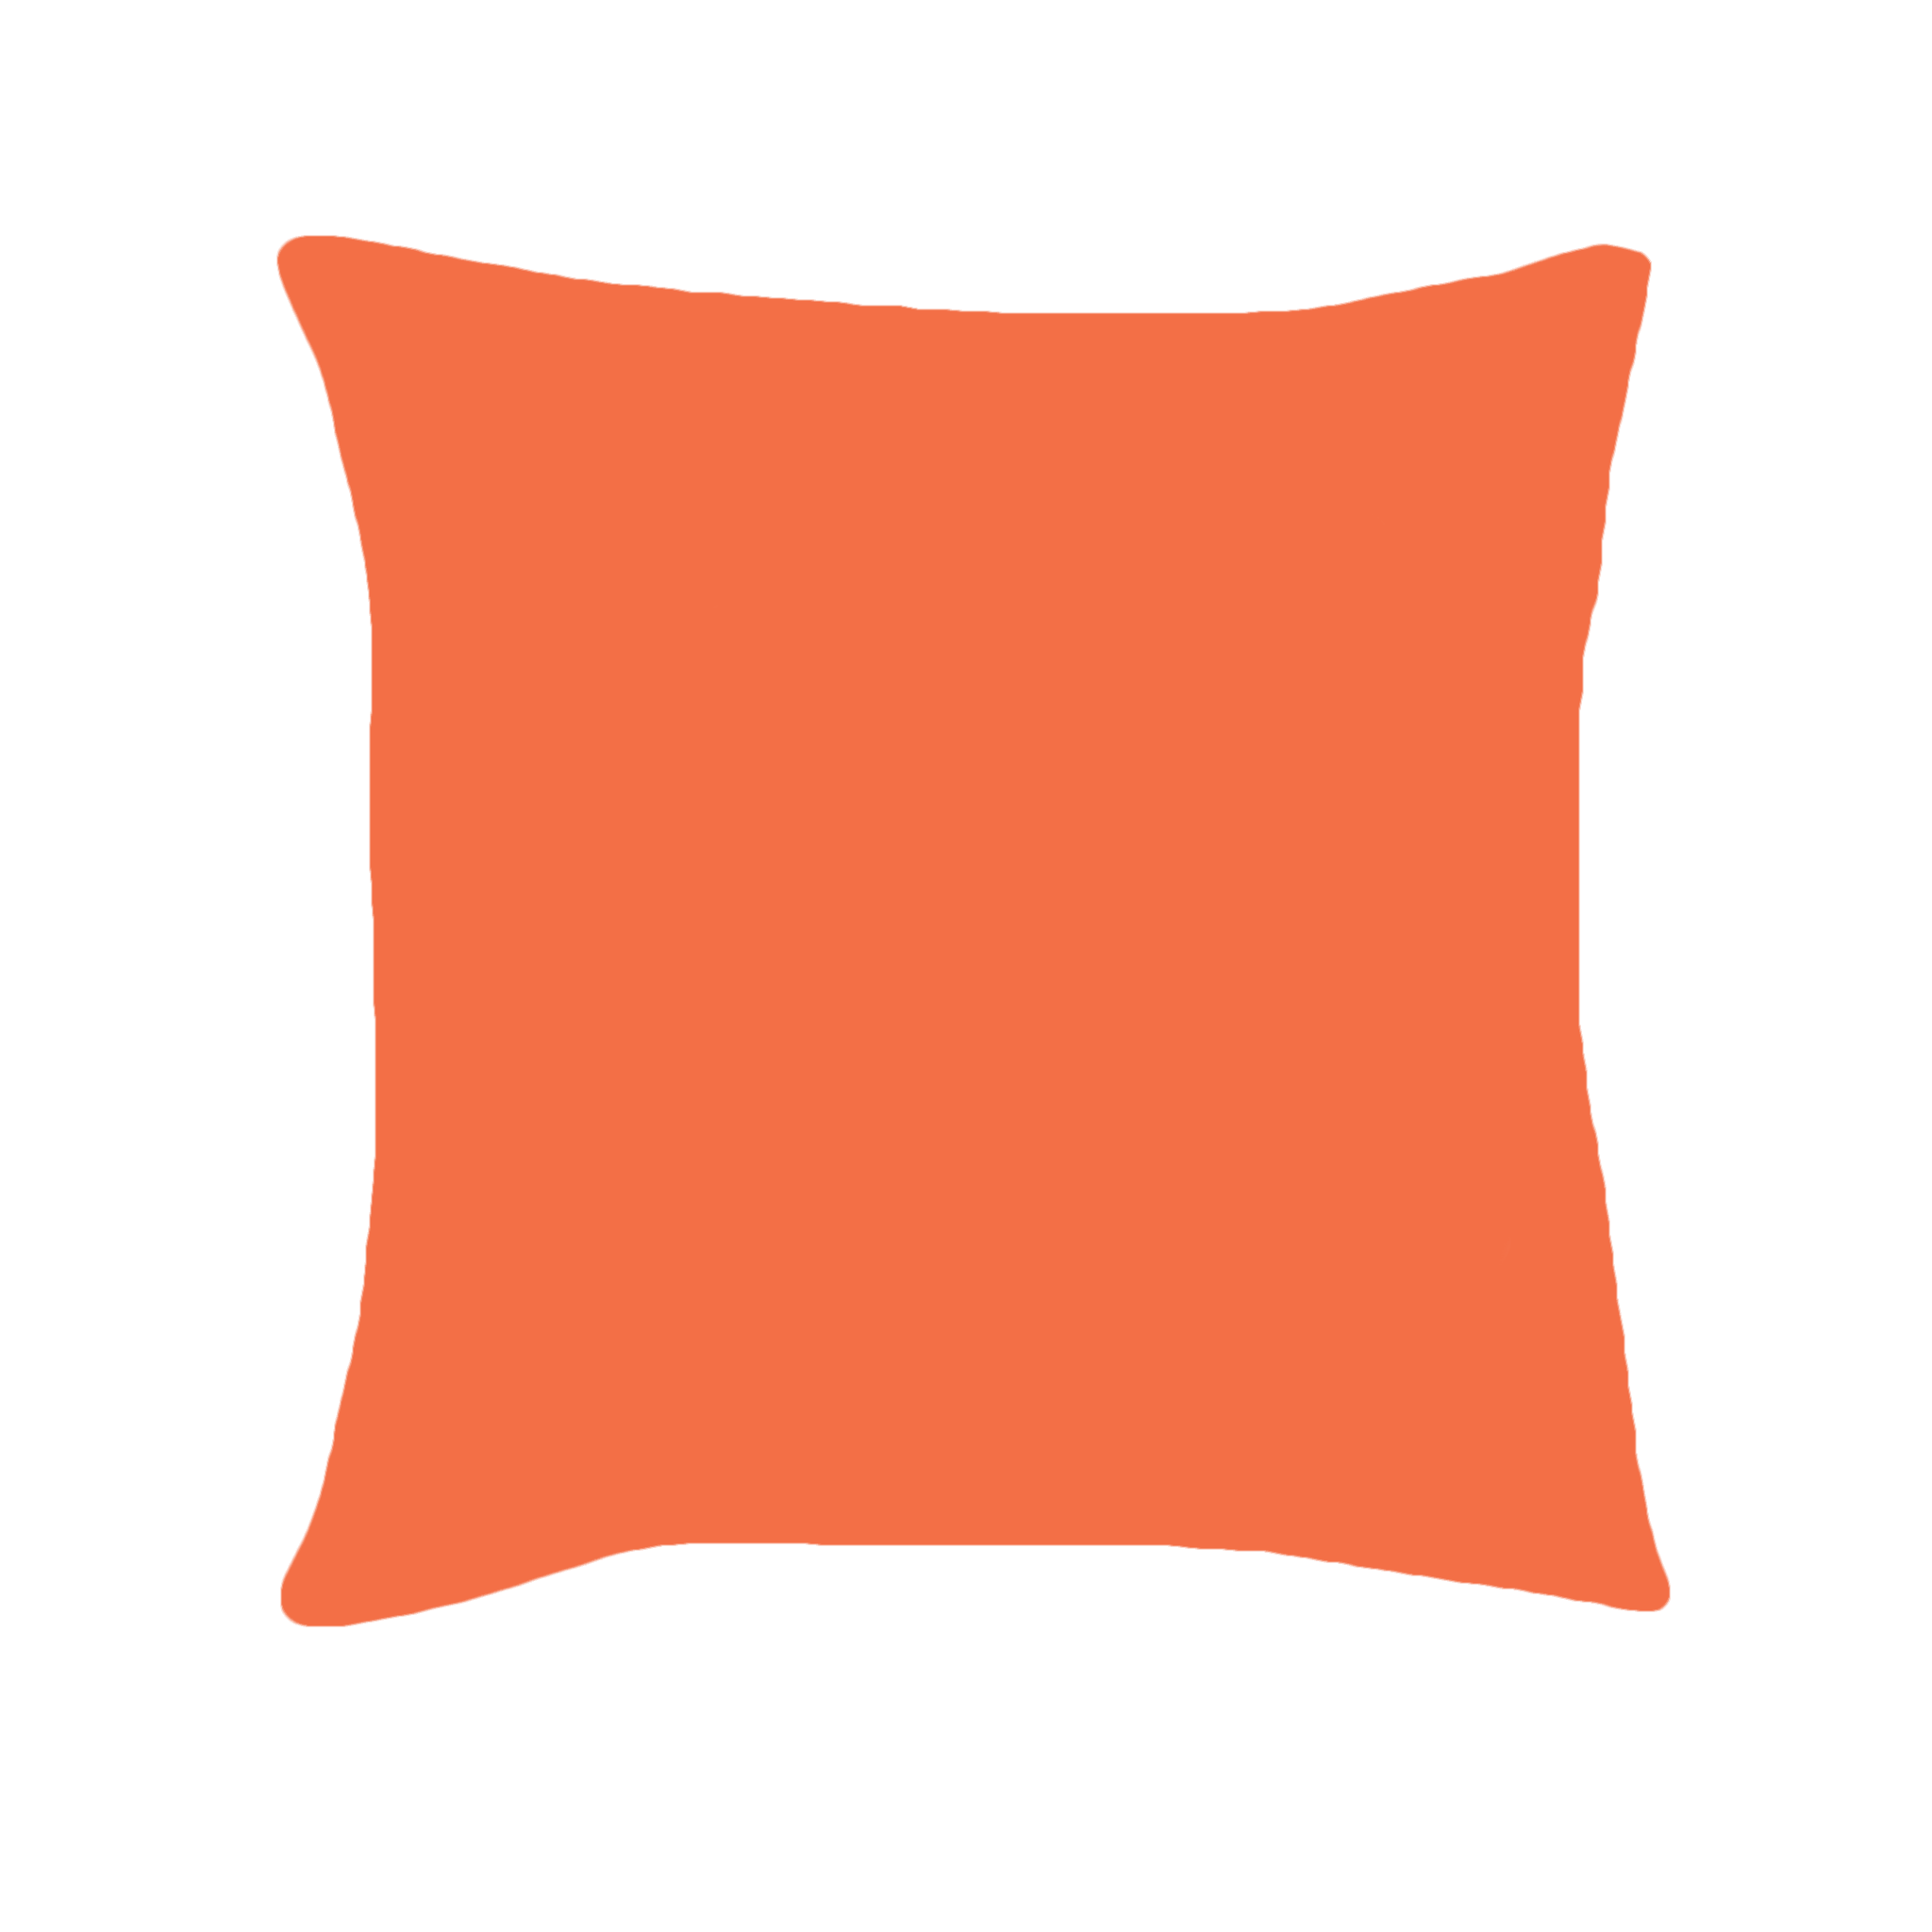 pillow products back letter pillows side decorative blow throw orange font the serif cushion u tangerine